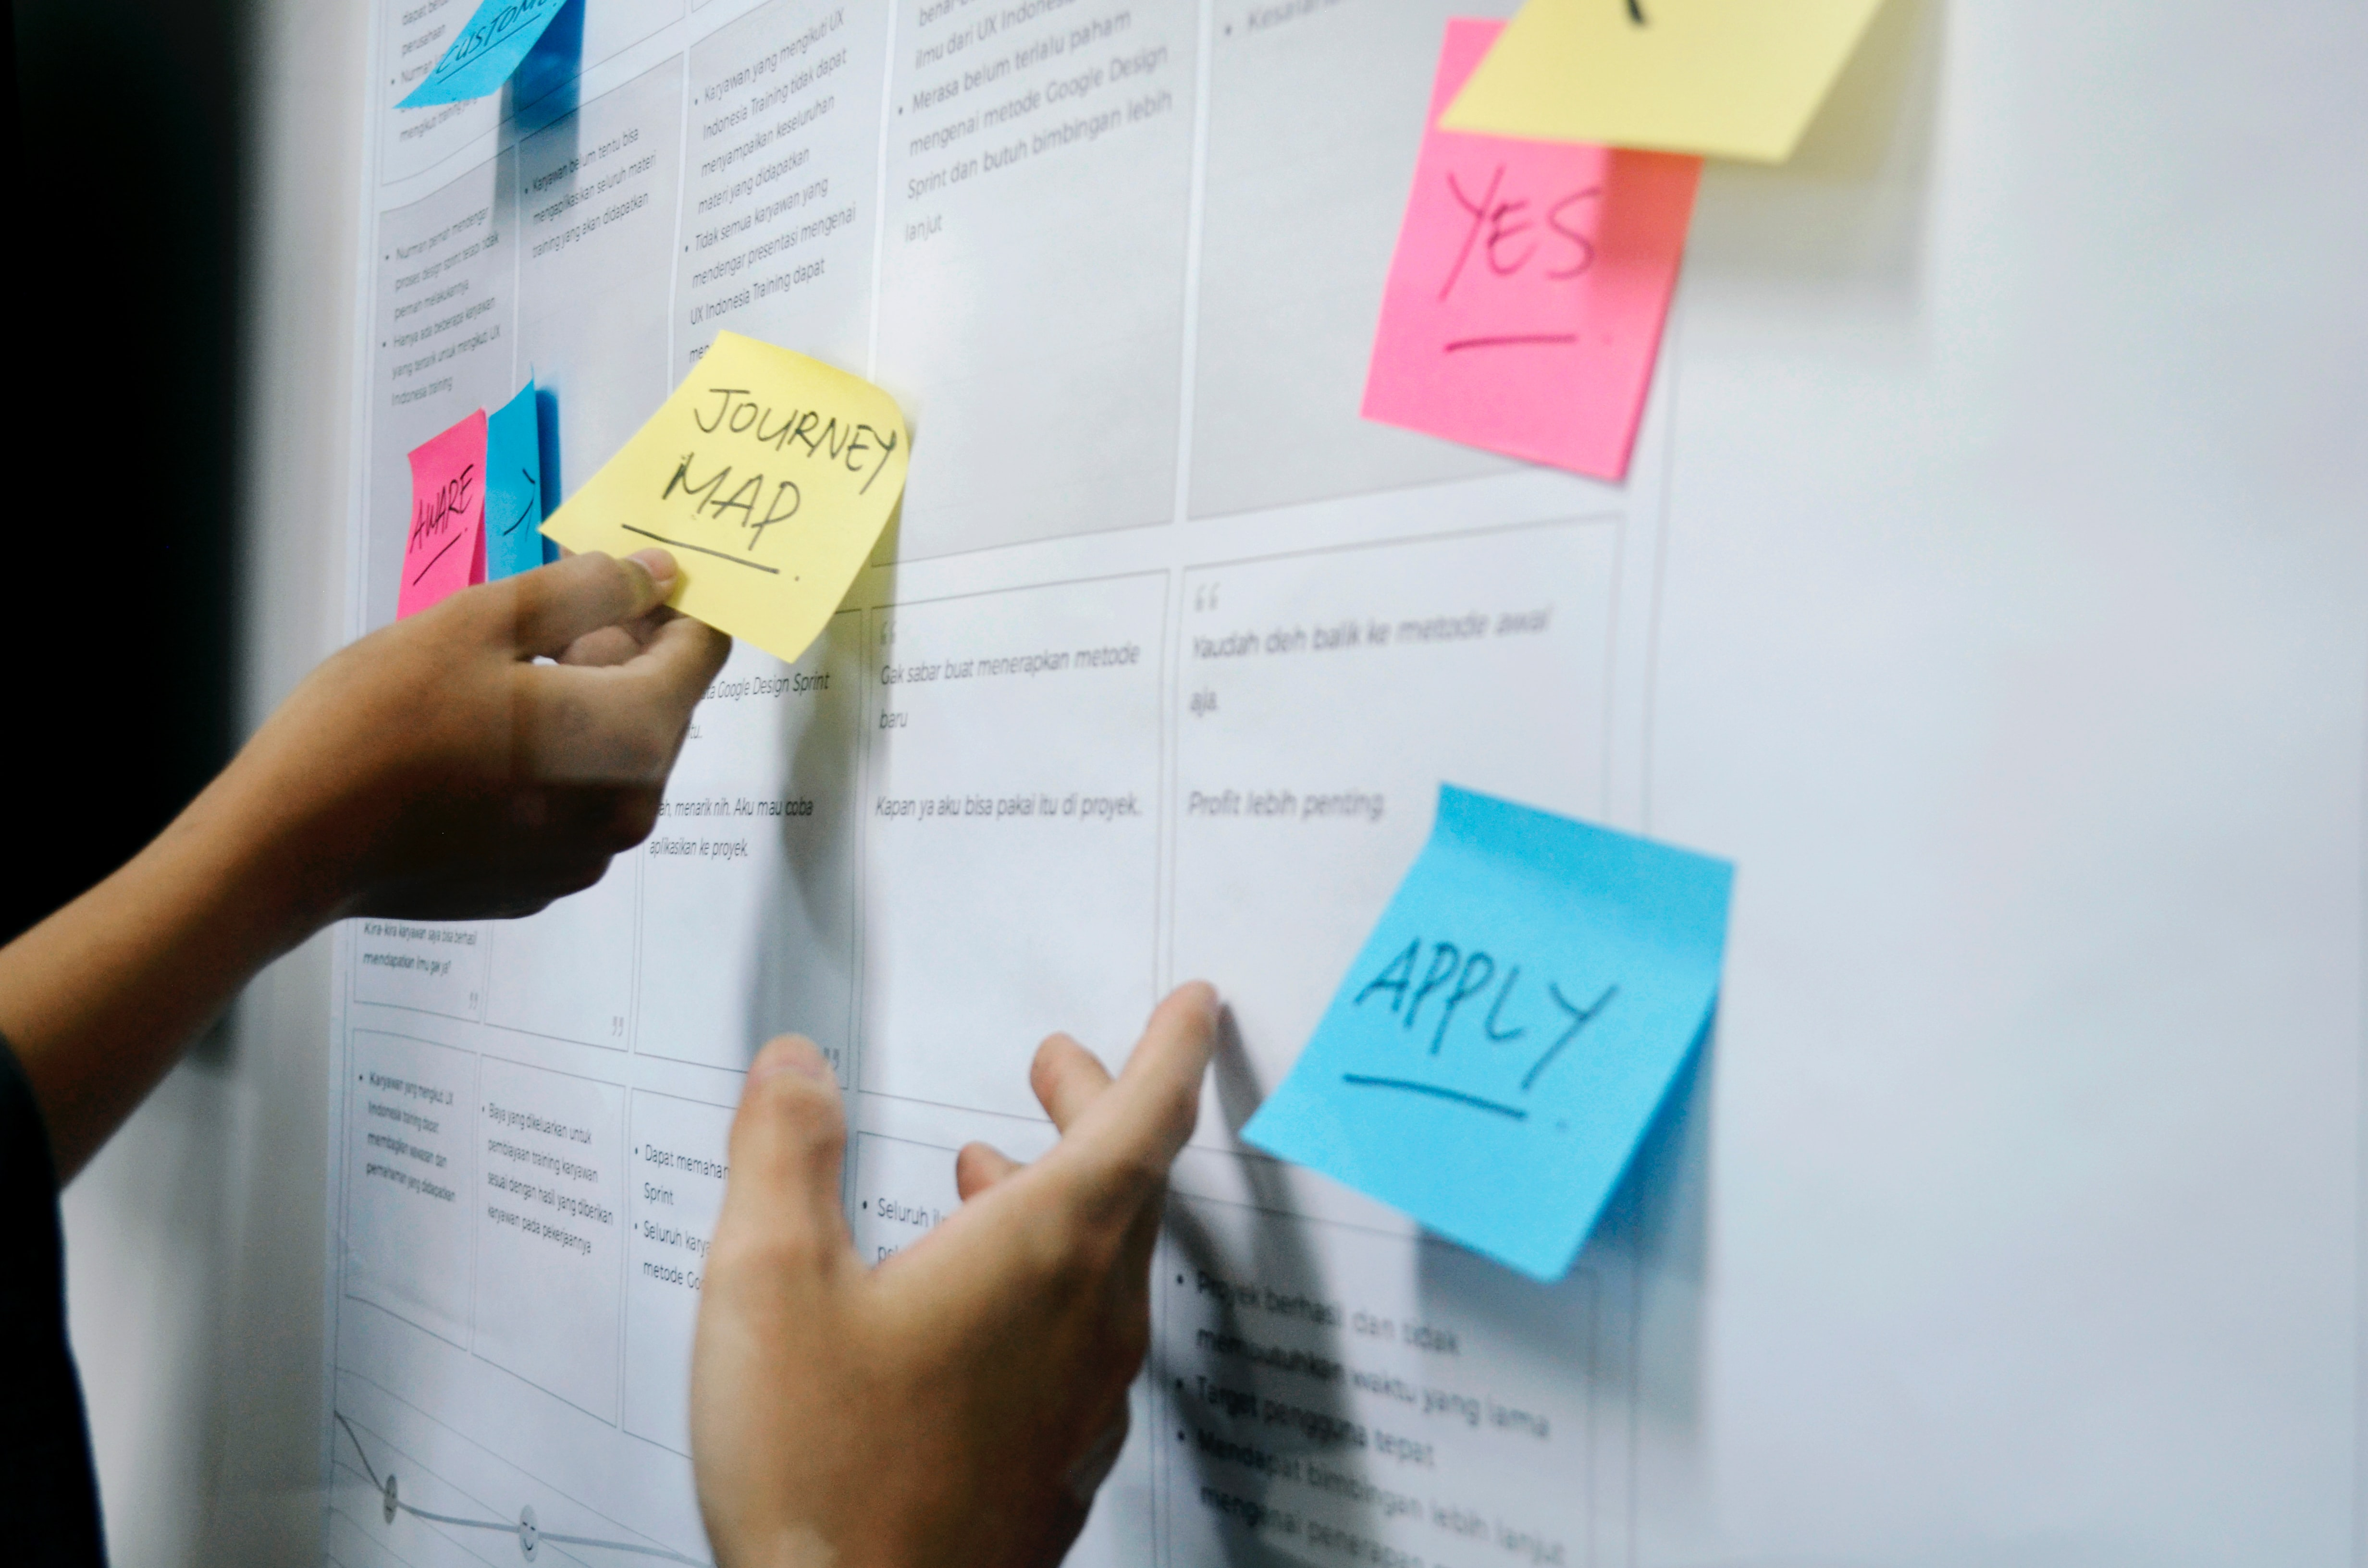 UX mapping